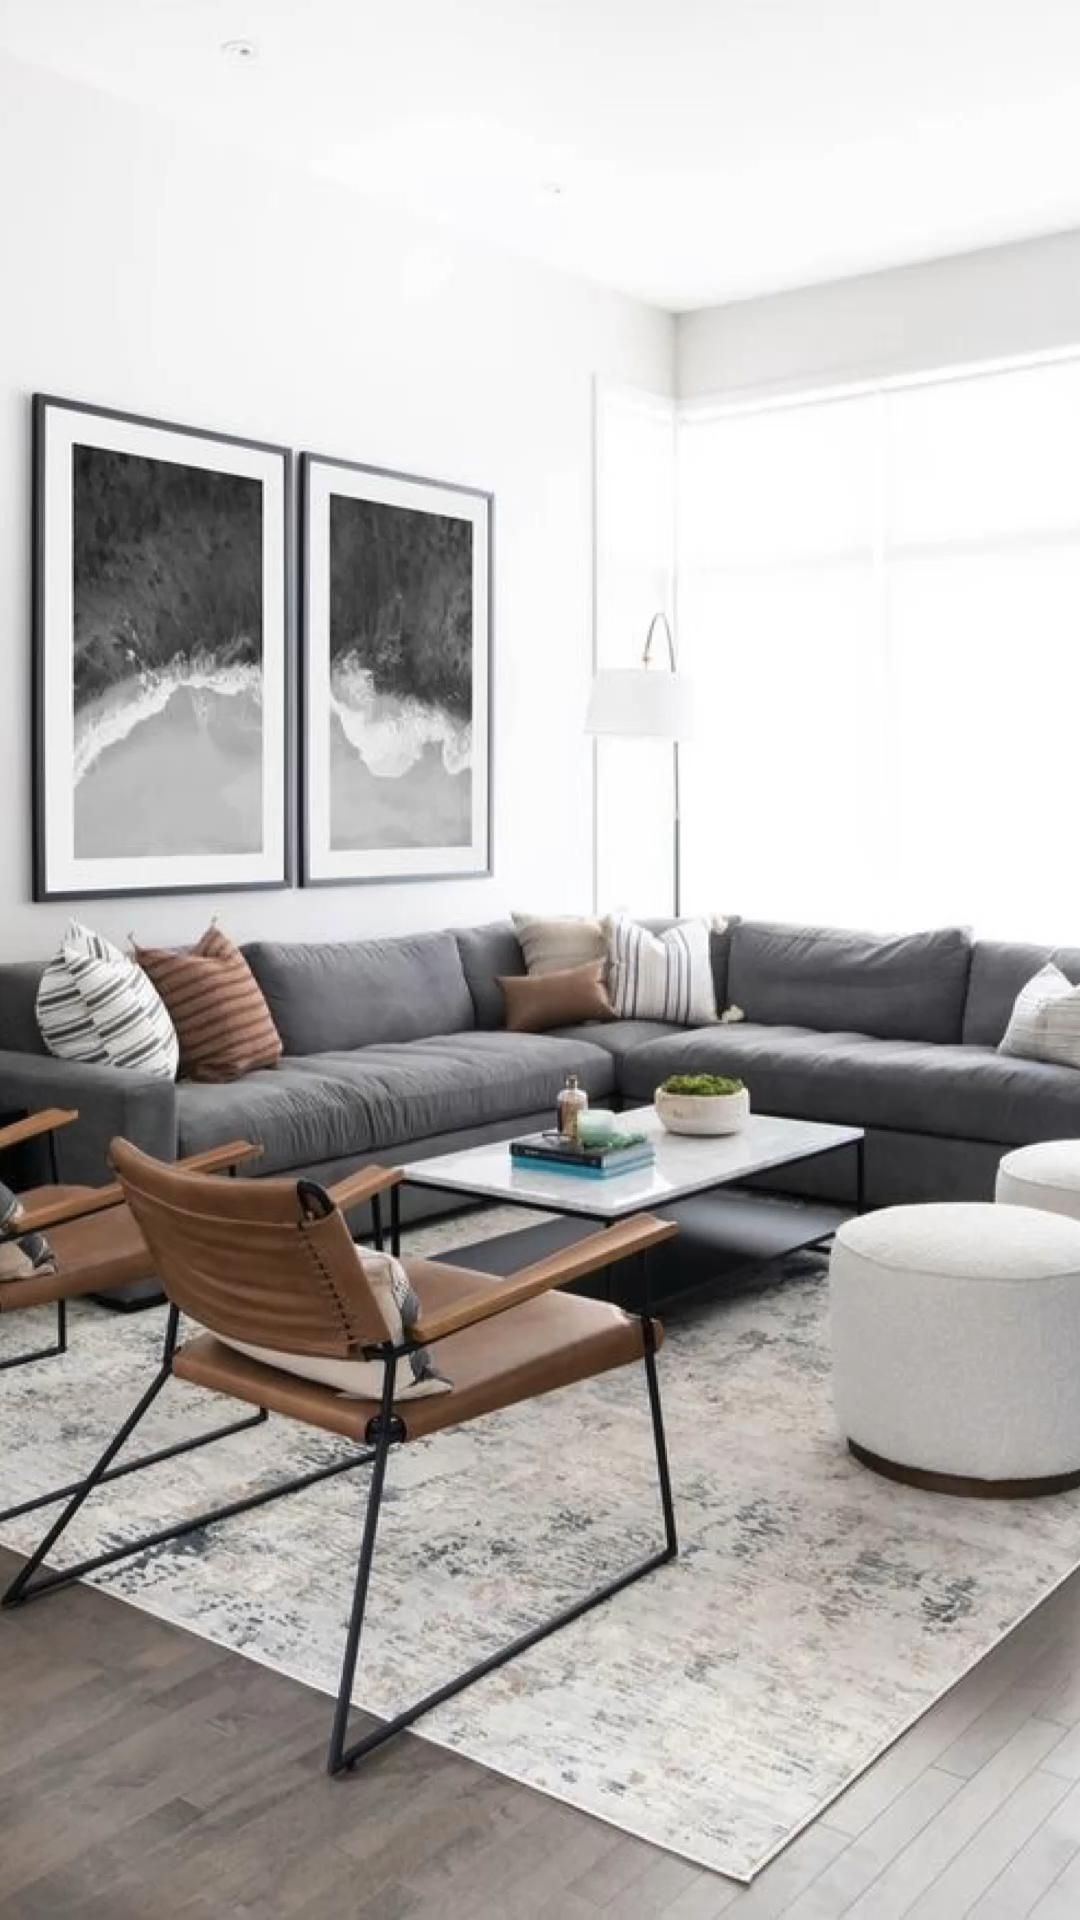 Our Modern and Minimal Living Room